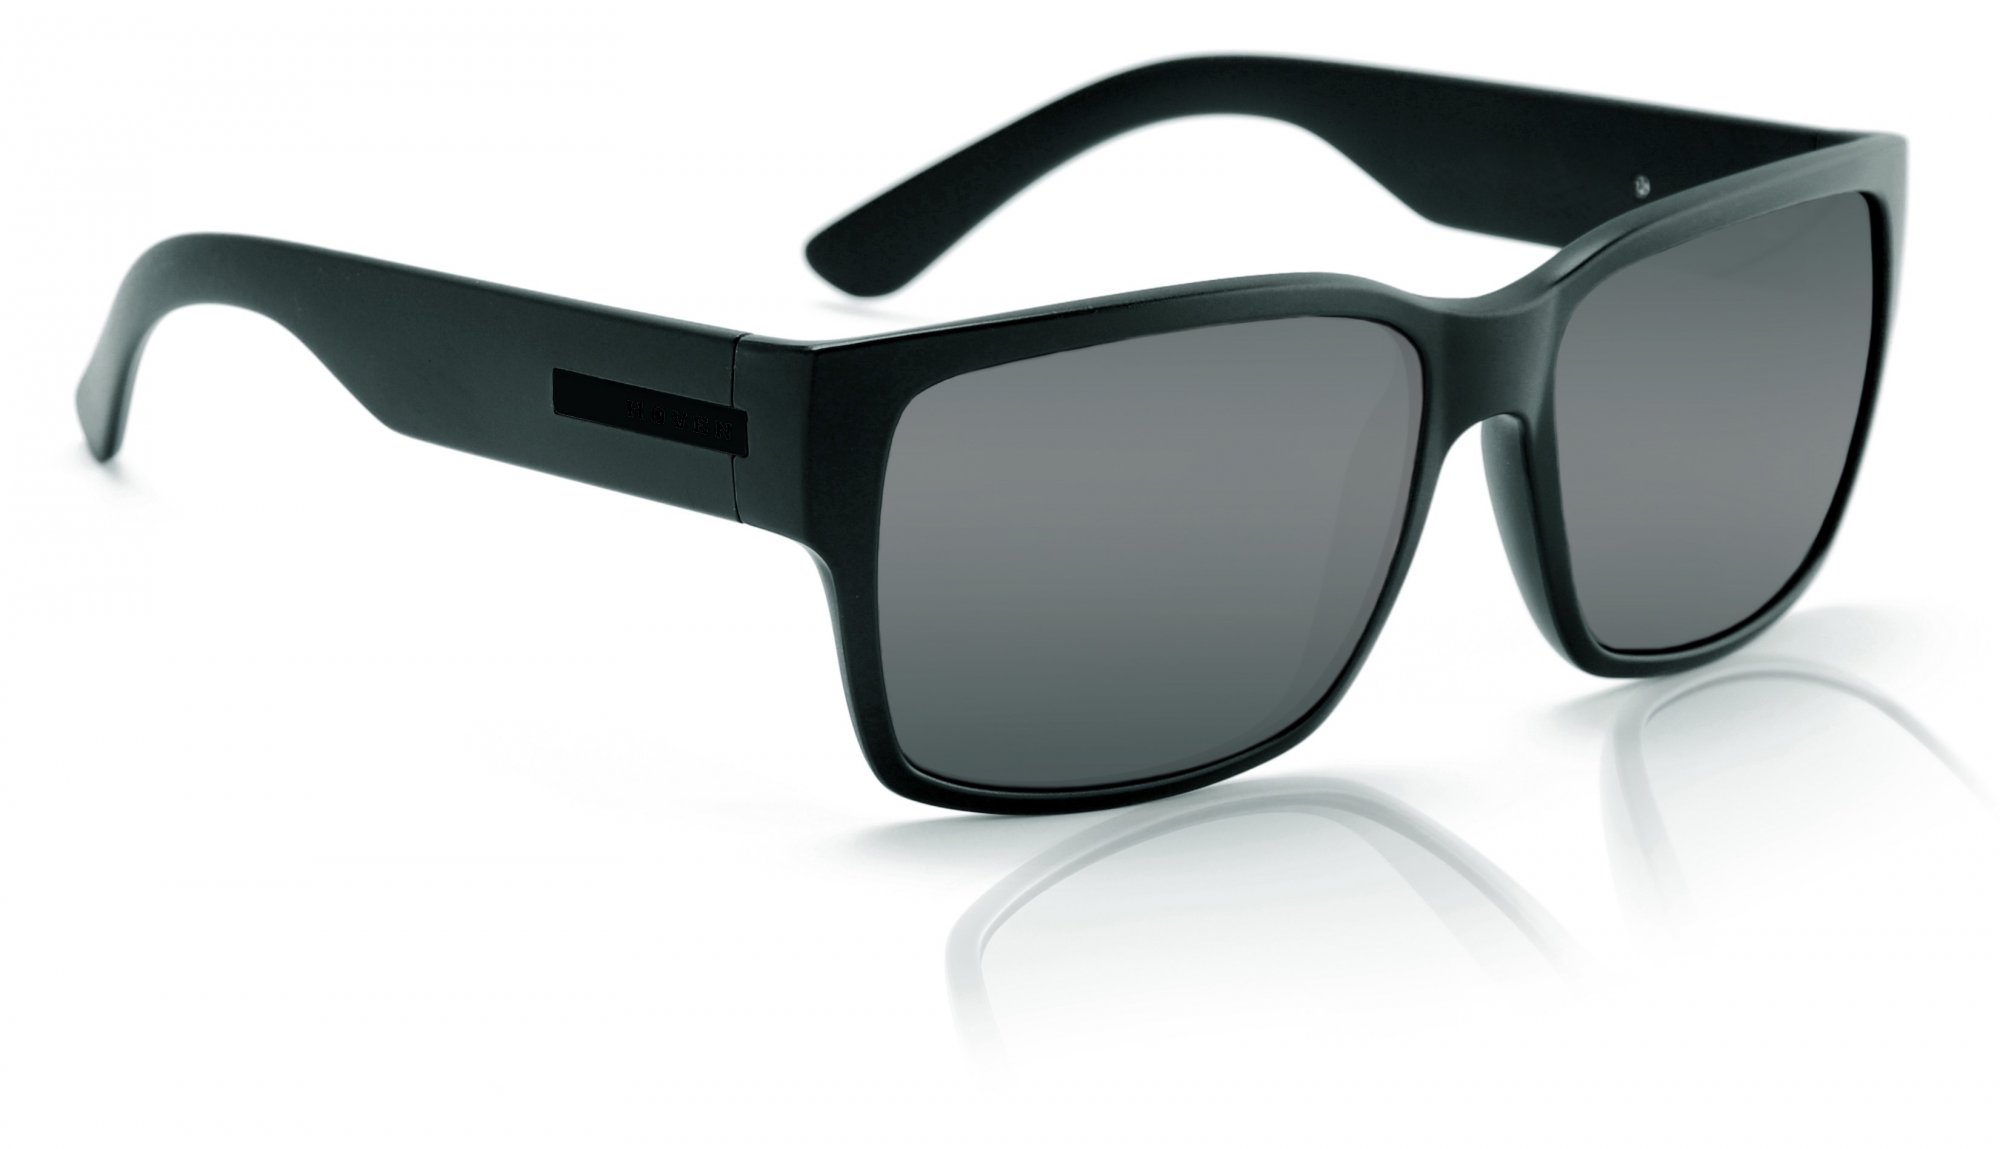 Hoven Mosteez Black on Black / Grey Polarized